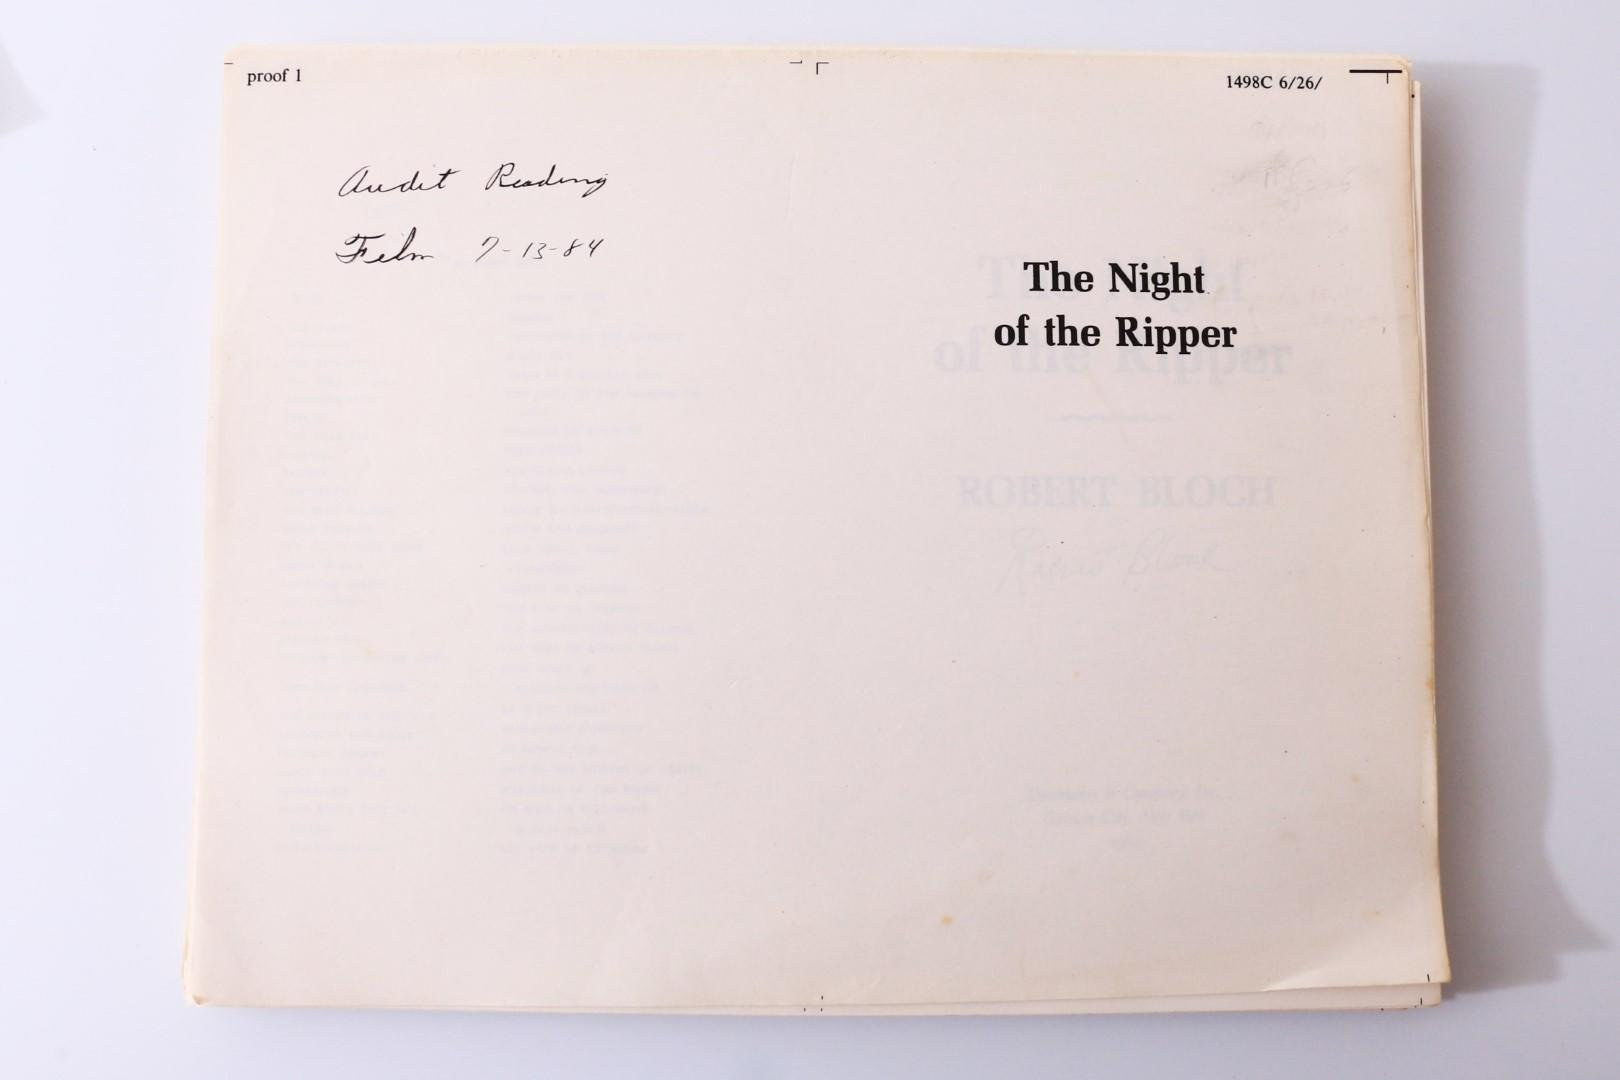 Robert Bloch - The Night of the Ripper MSS and Associated Pieces - Doubleday, 1984, Manuscript. Signed